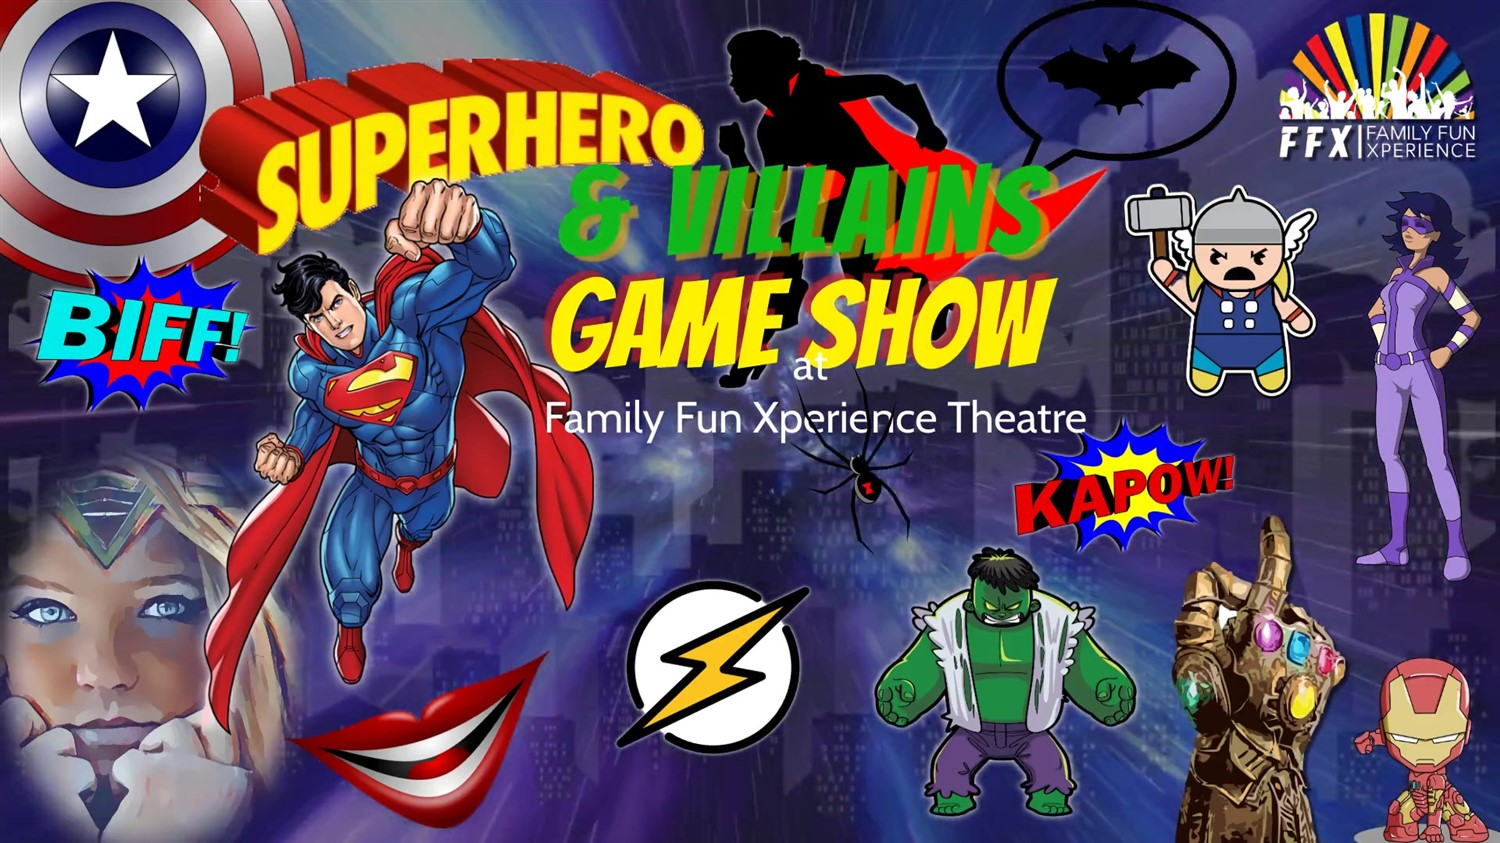 Superheroes & Villains Game Show Live, interactive fun for comic geeks and everyone else! on Sep 24, 20:00@FFX Theatre - Buy tickets and Get information on Family Fun Xperience tickets.ffxshow.org